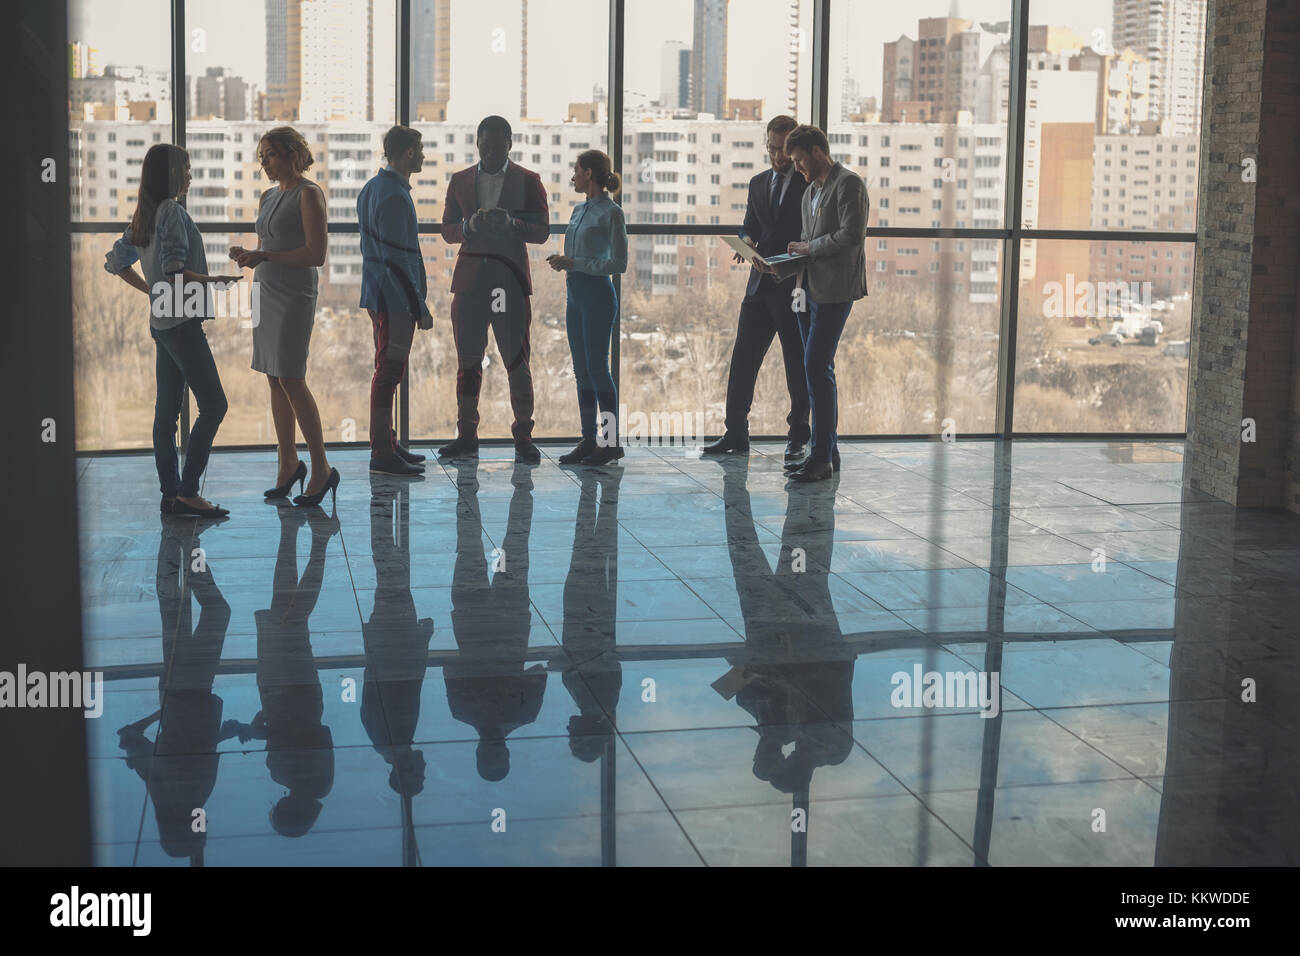 Silhouettes of business people in conference room Stock Photo